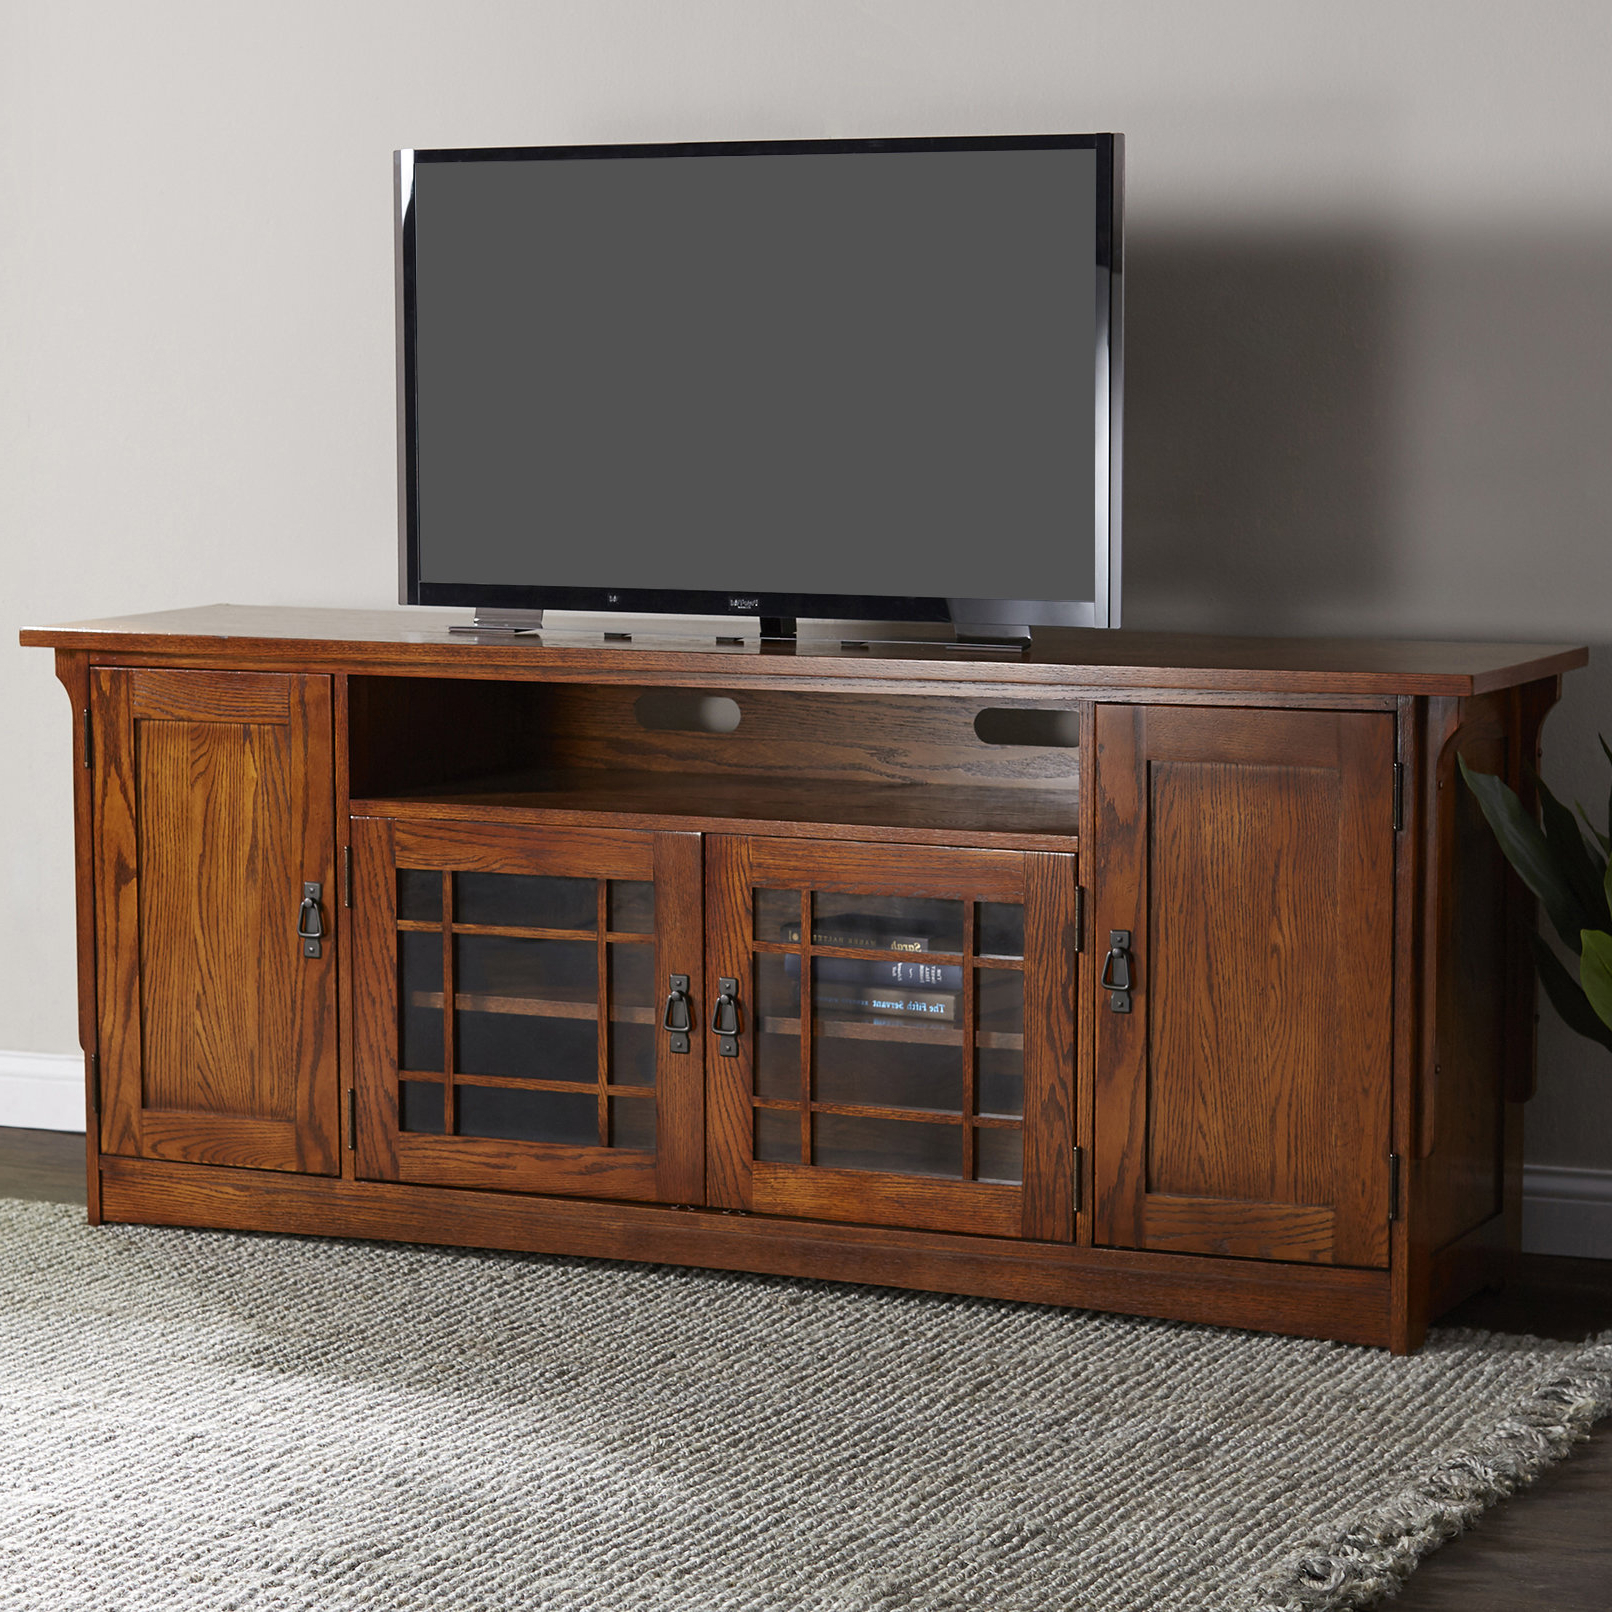 70 Inches And Larger Tv Stands | Birch Lane With Regard To Walton 74 Inch Open Tv Stands (Gallery 15 of 20)